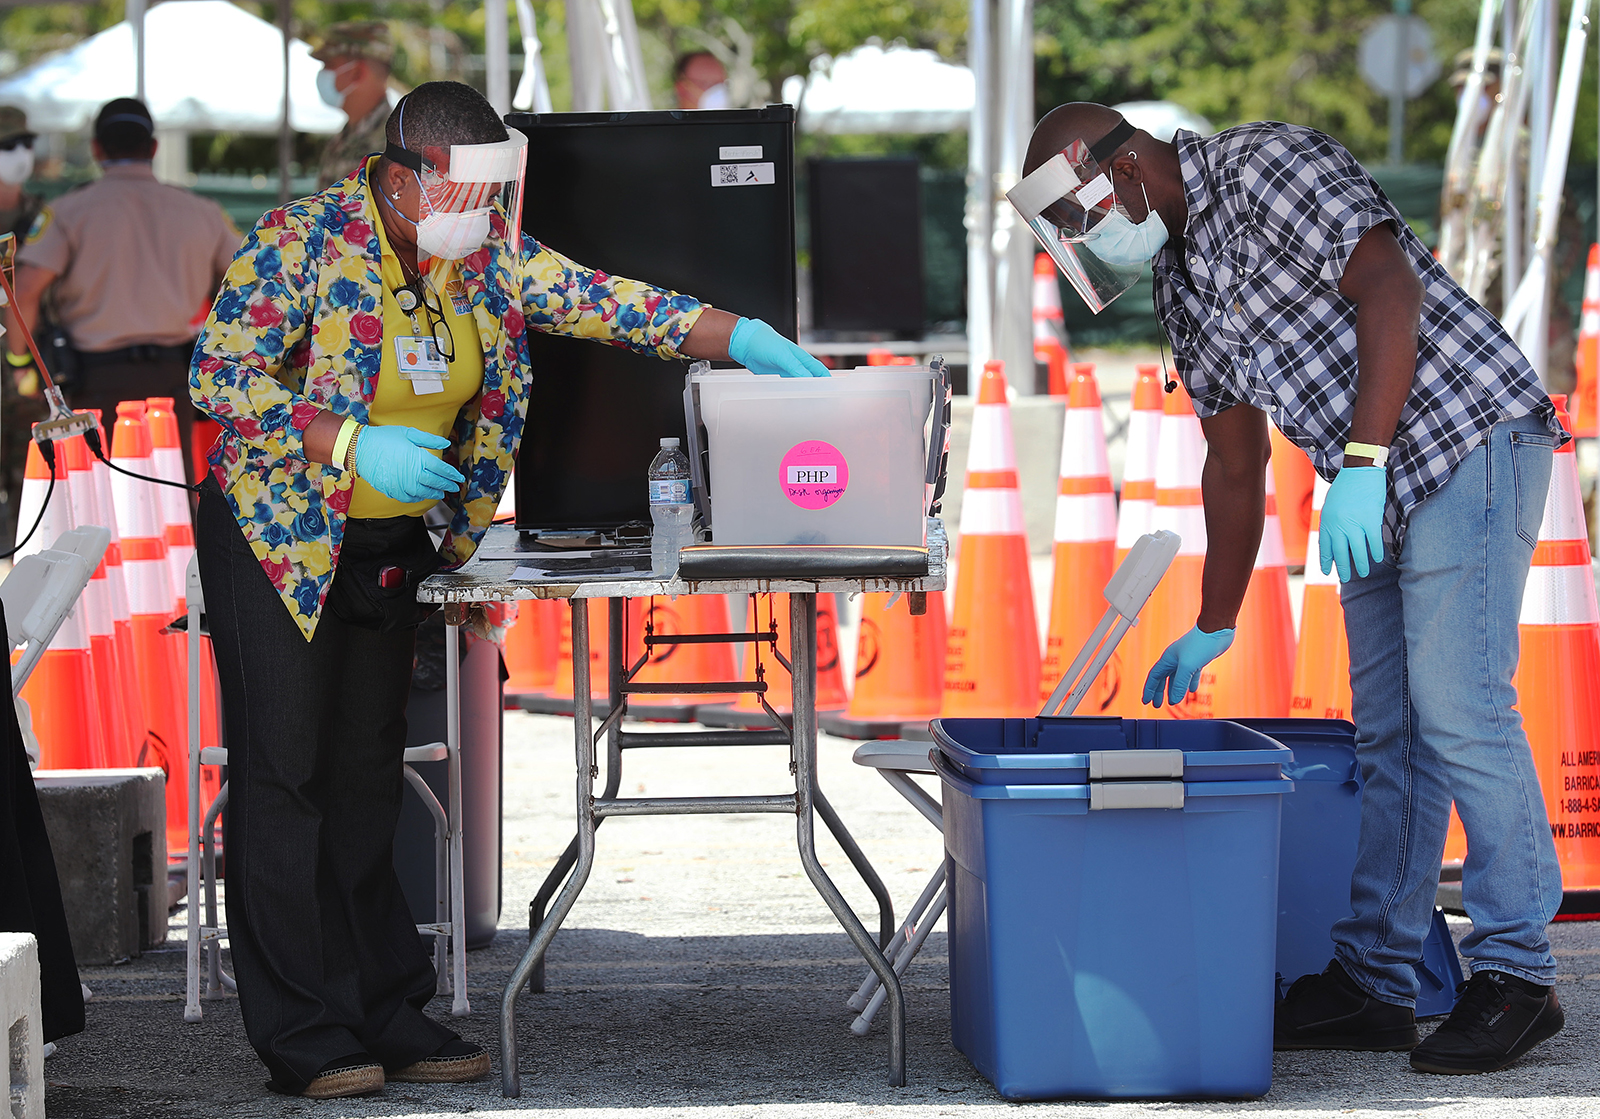 Health care workers wait for people to arrive to be tested at the Covid-19 walk up testing site that opened on April 27, in North Miami, Florida.